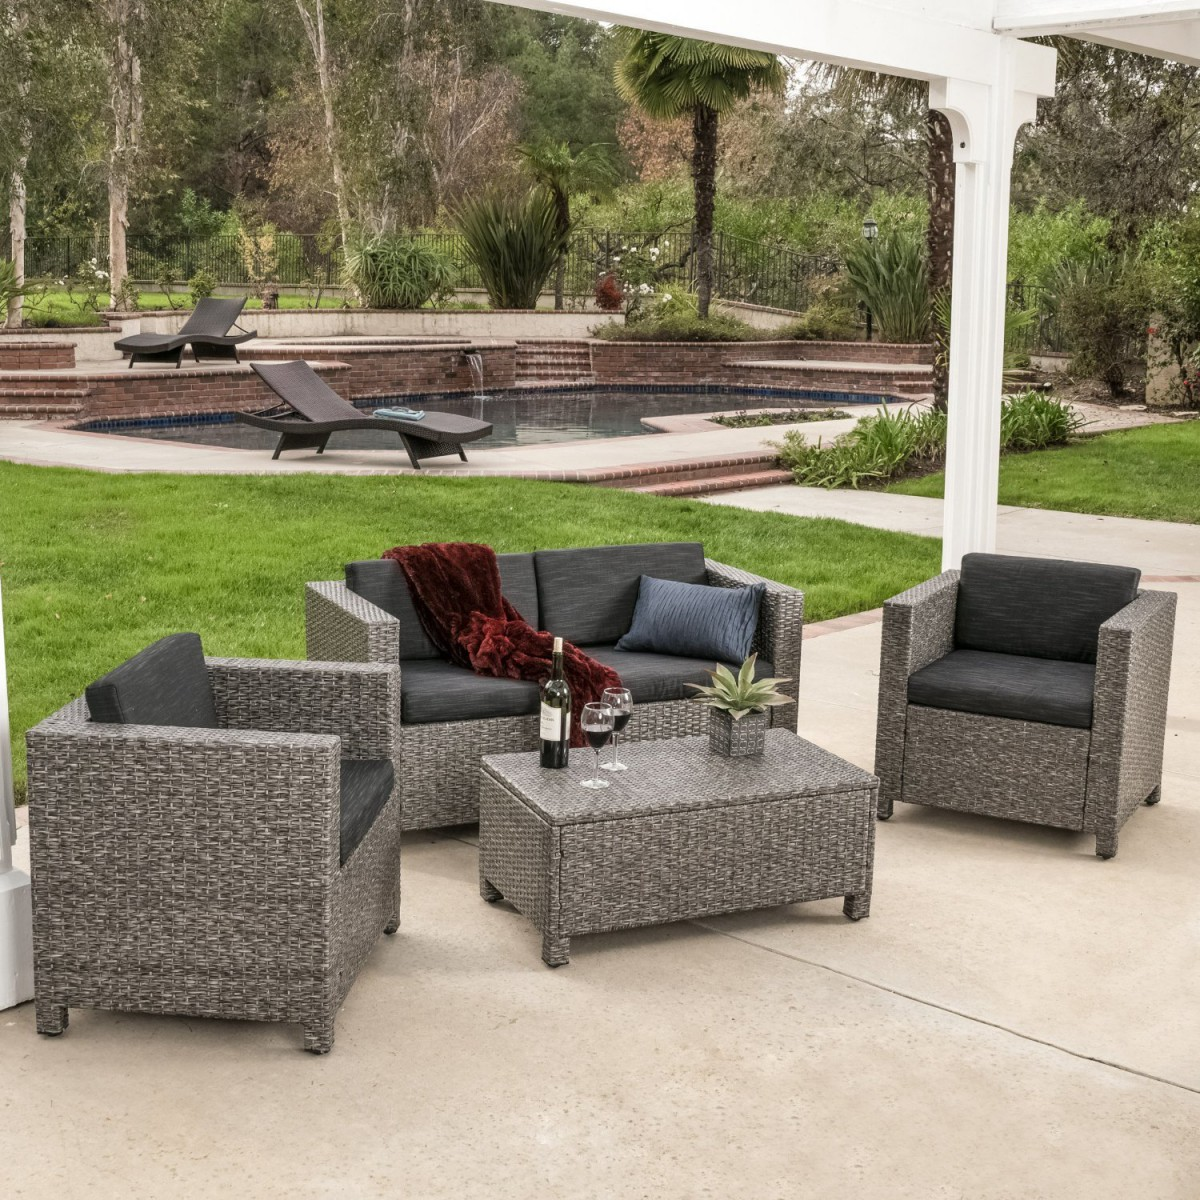 Rattan Sofa Instructions Venice 4 Piece Grey Black Wicker Outdoor Sectional Sofa Set